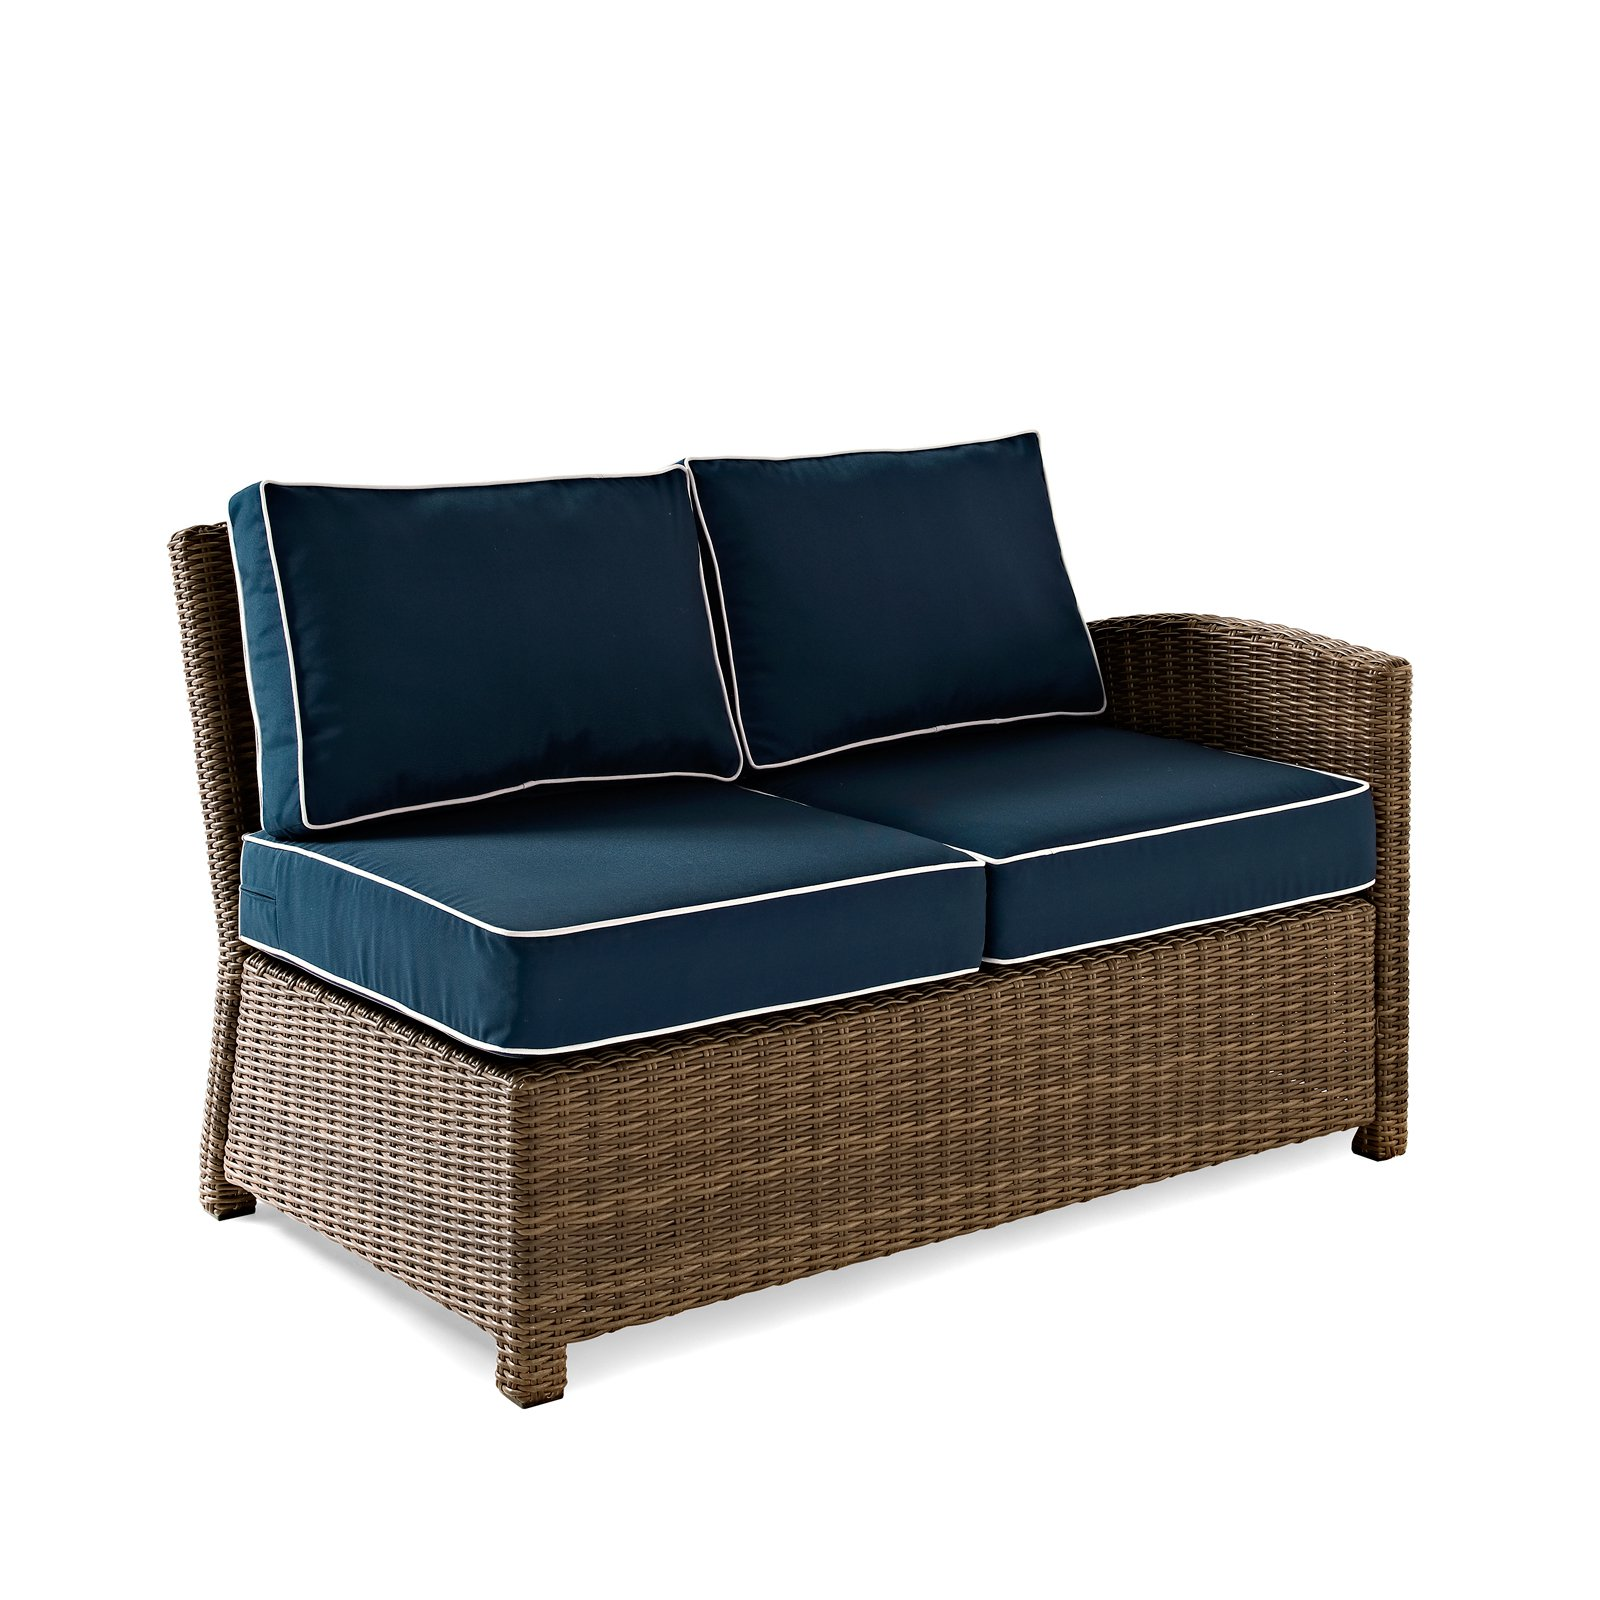 Crosley Catalina Wicker Patio Round Sectional Sofa with Sand